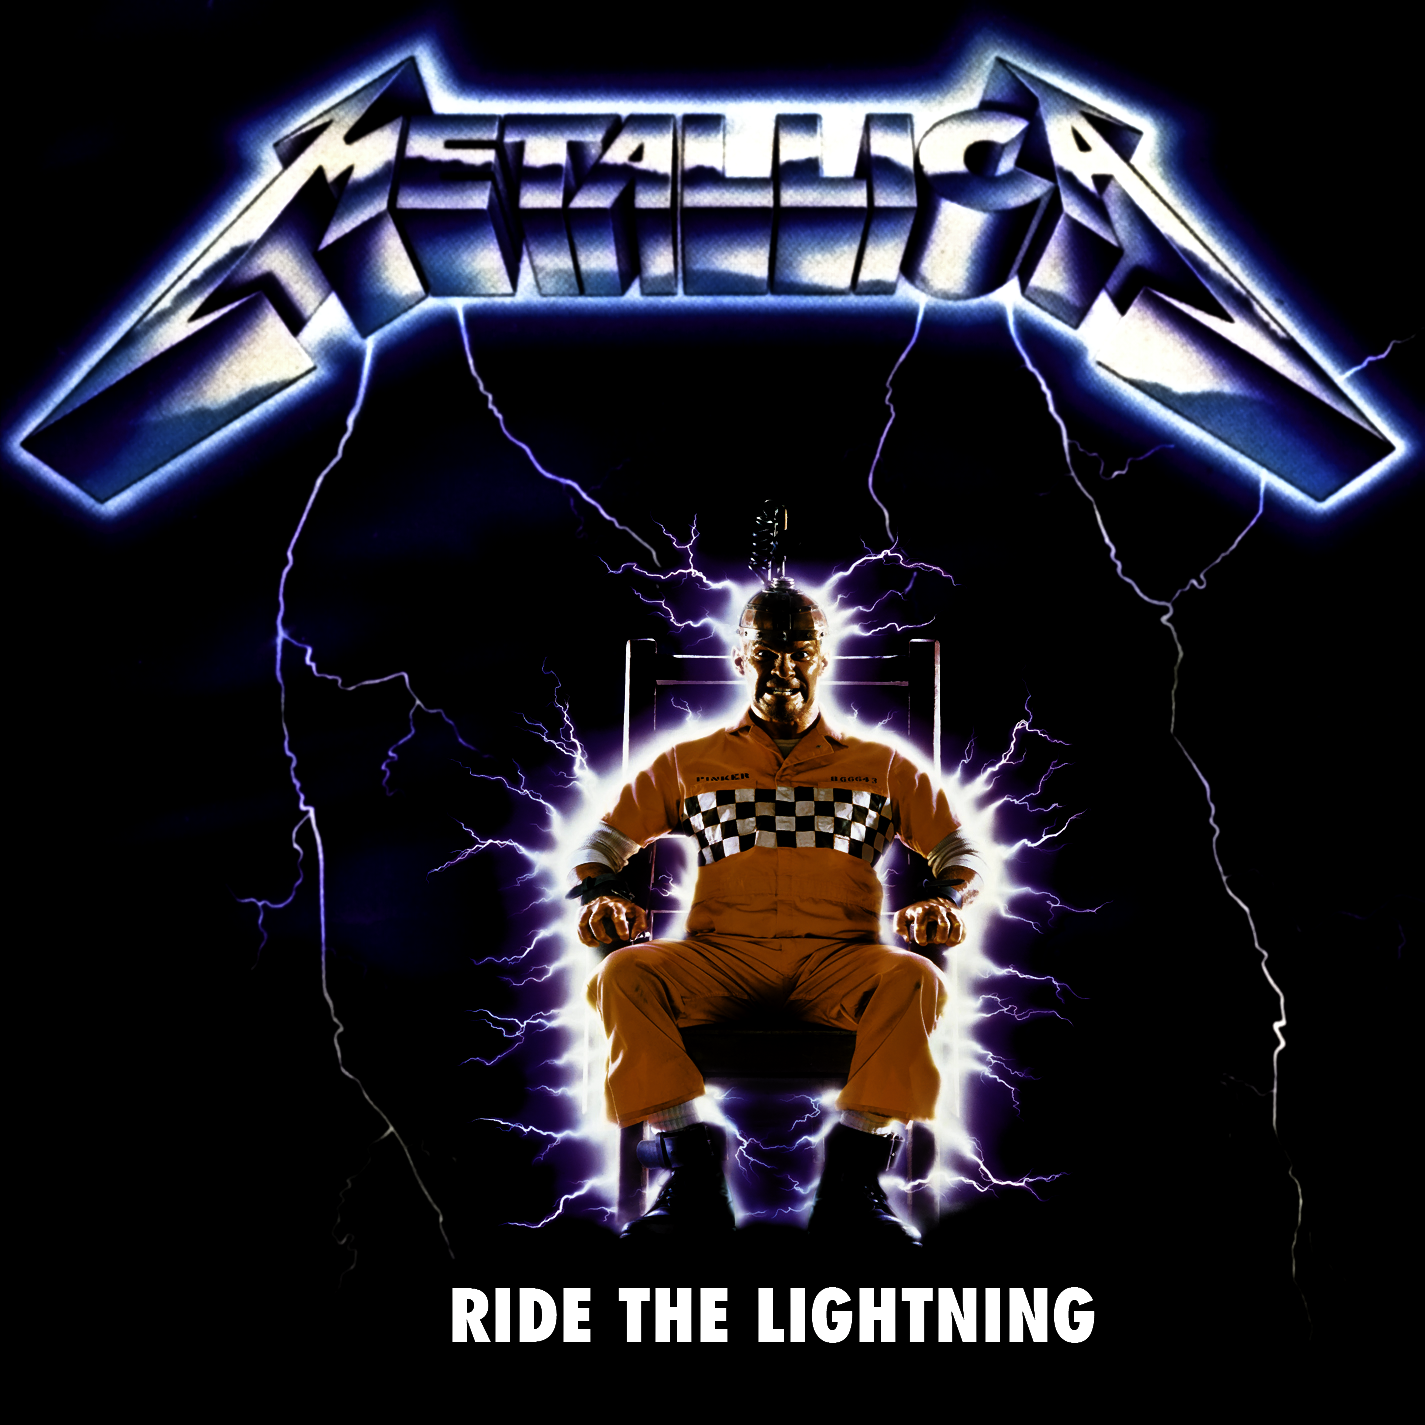 Metallica Ride The Lightning Wallpaper Download cd metallica ride the 1425x1425